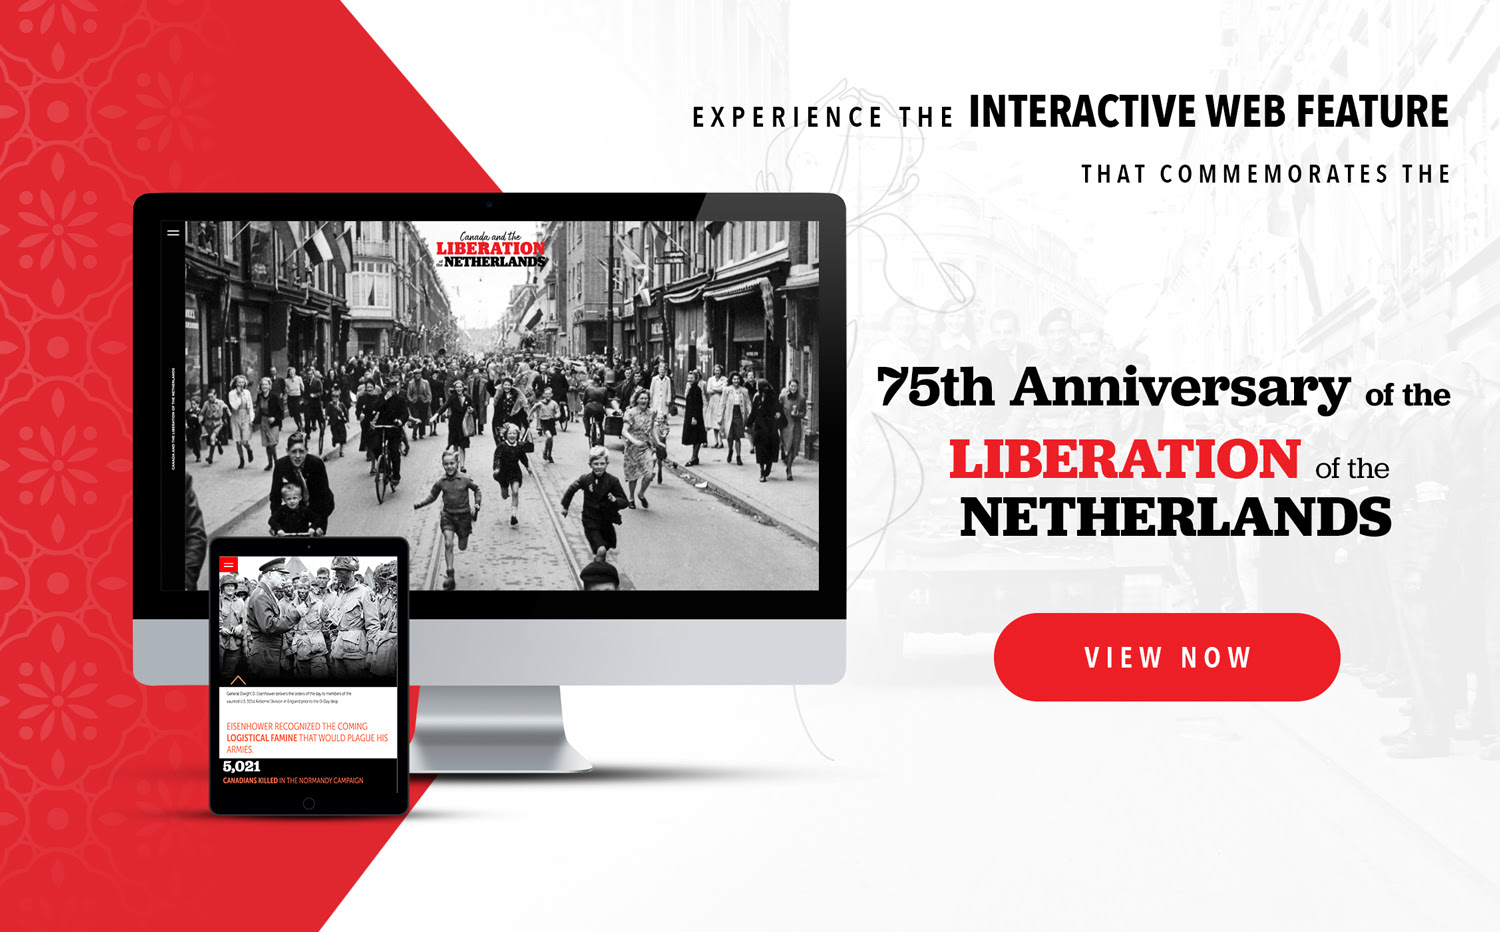 75th Anniversary of the Liberation of the Netherlands